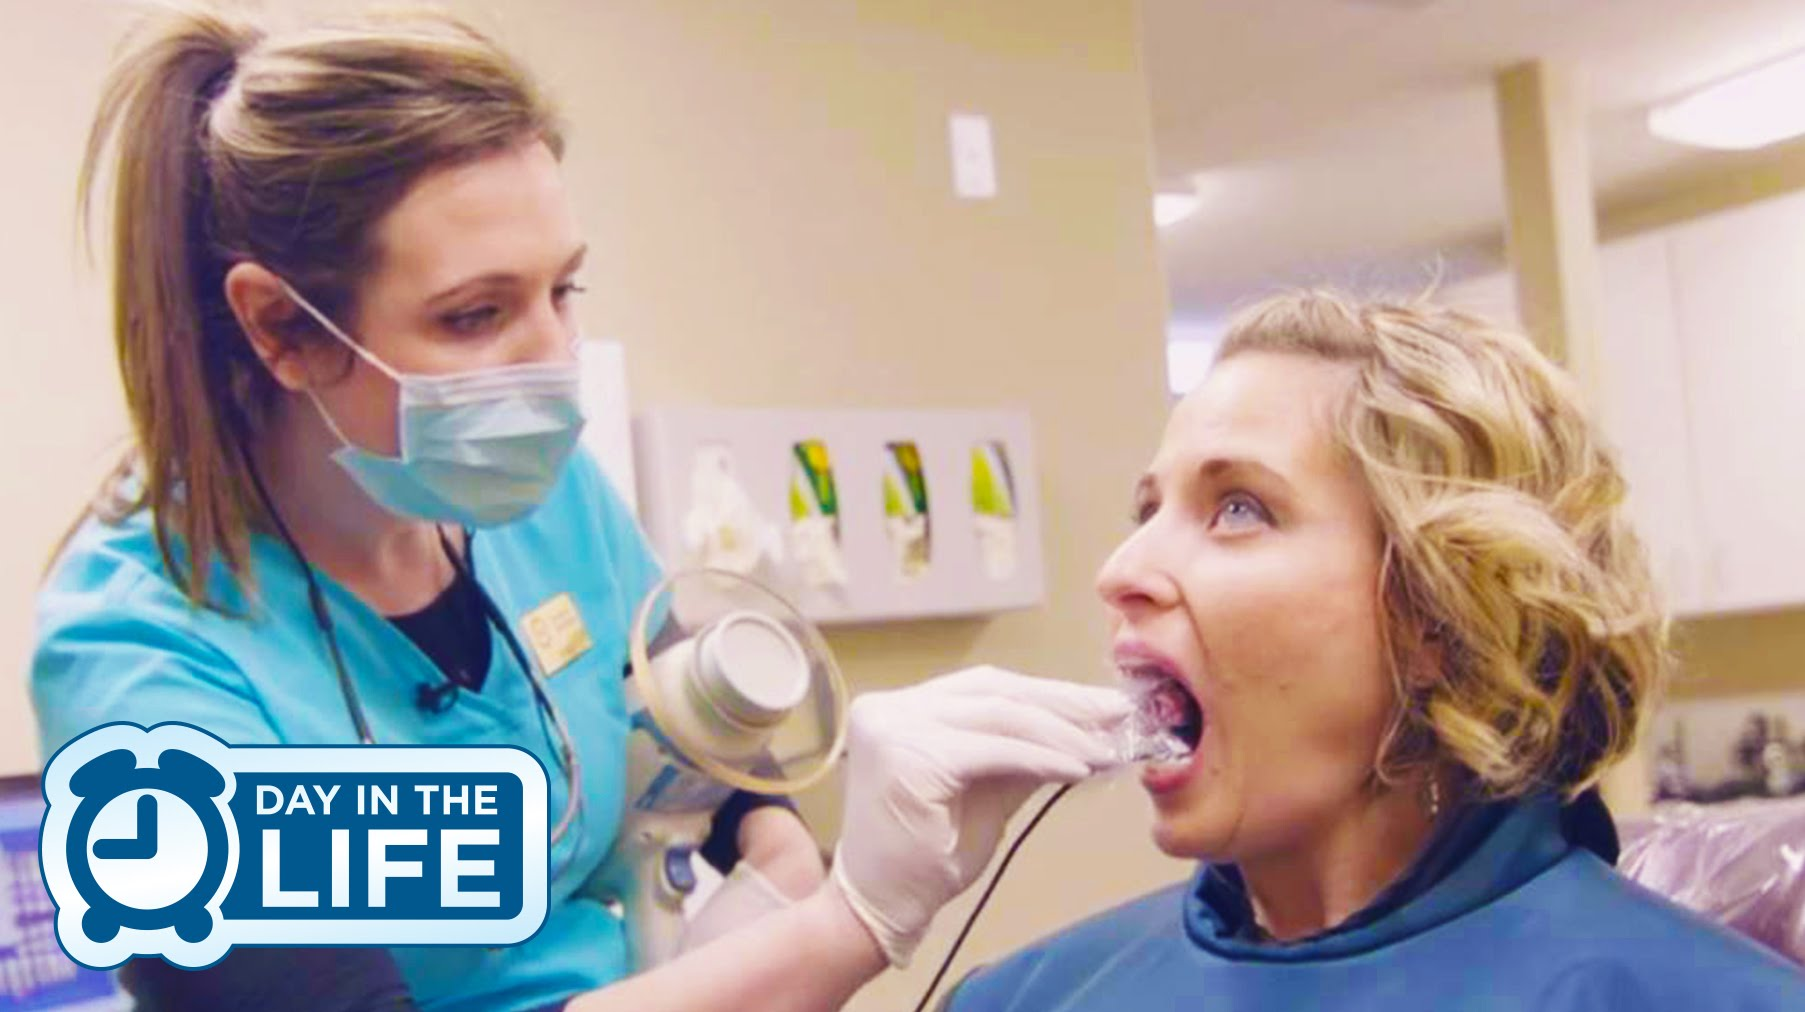 A Day in the Life of a Dental Hygienist YouTube